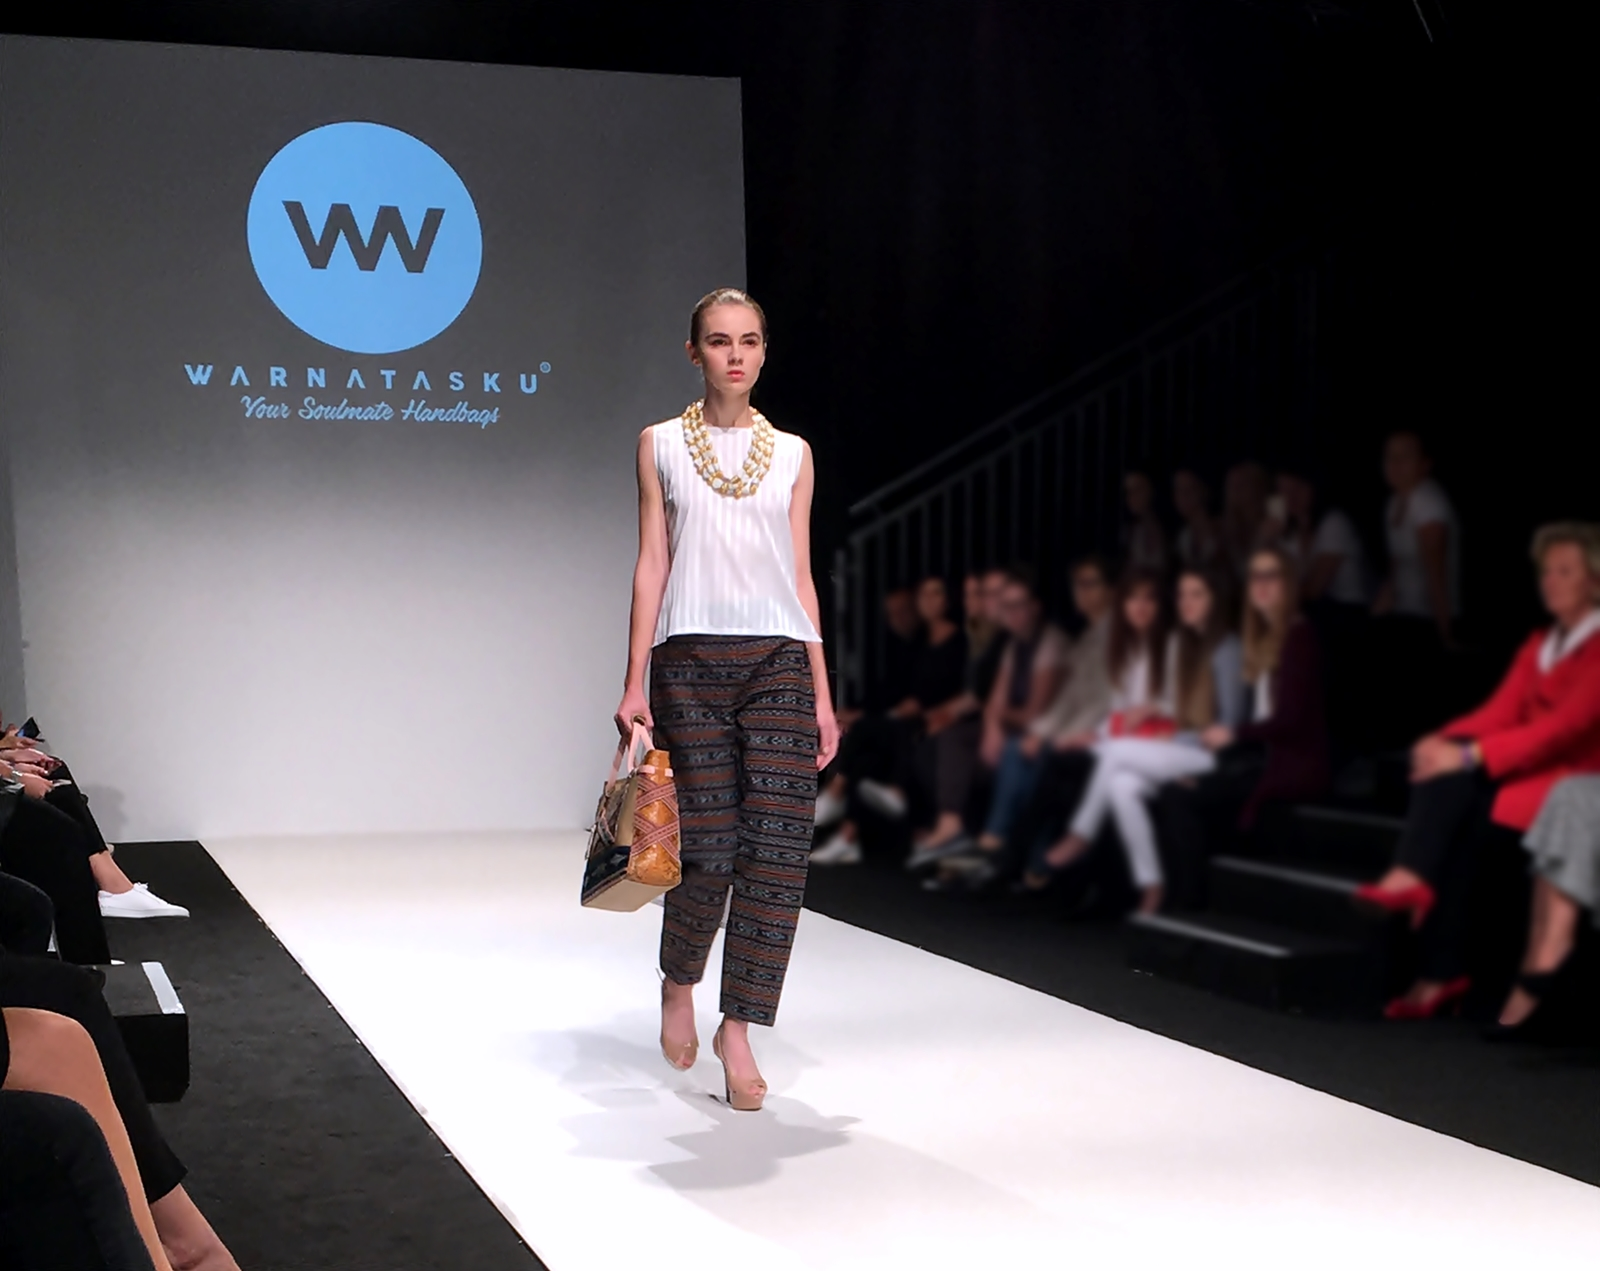 Vienna Fashion Week 2017 - Laufsteg - Show - Warnatasku Designer - Fashionladyloves by Tamara Wagner - Fashion Blog